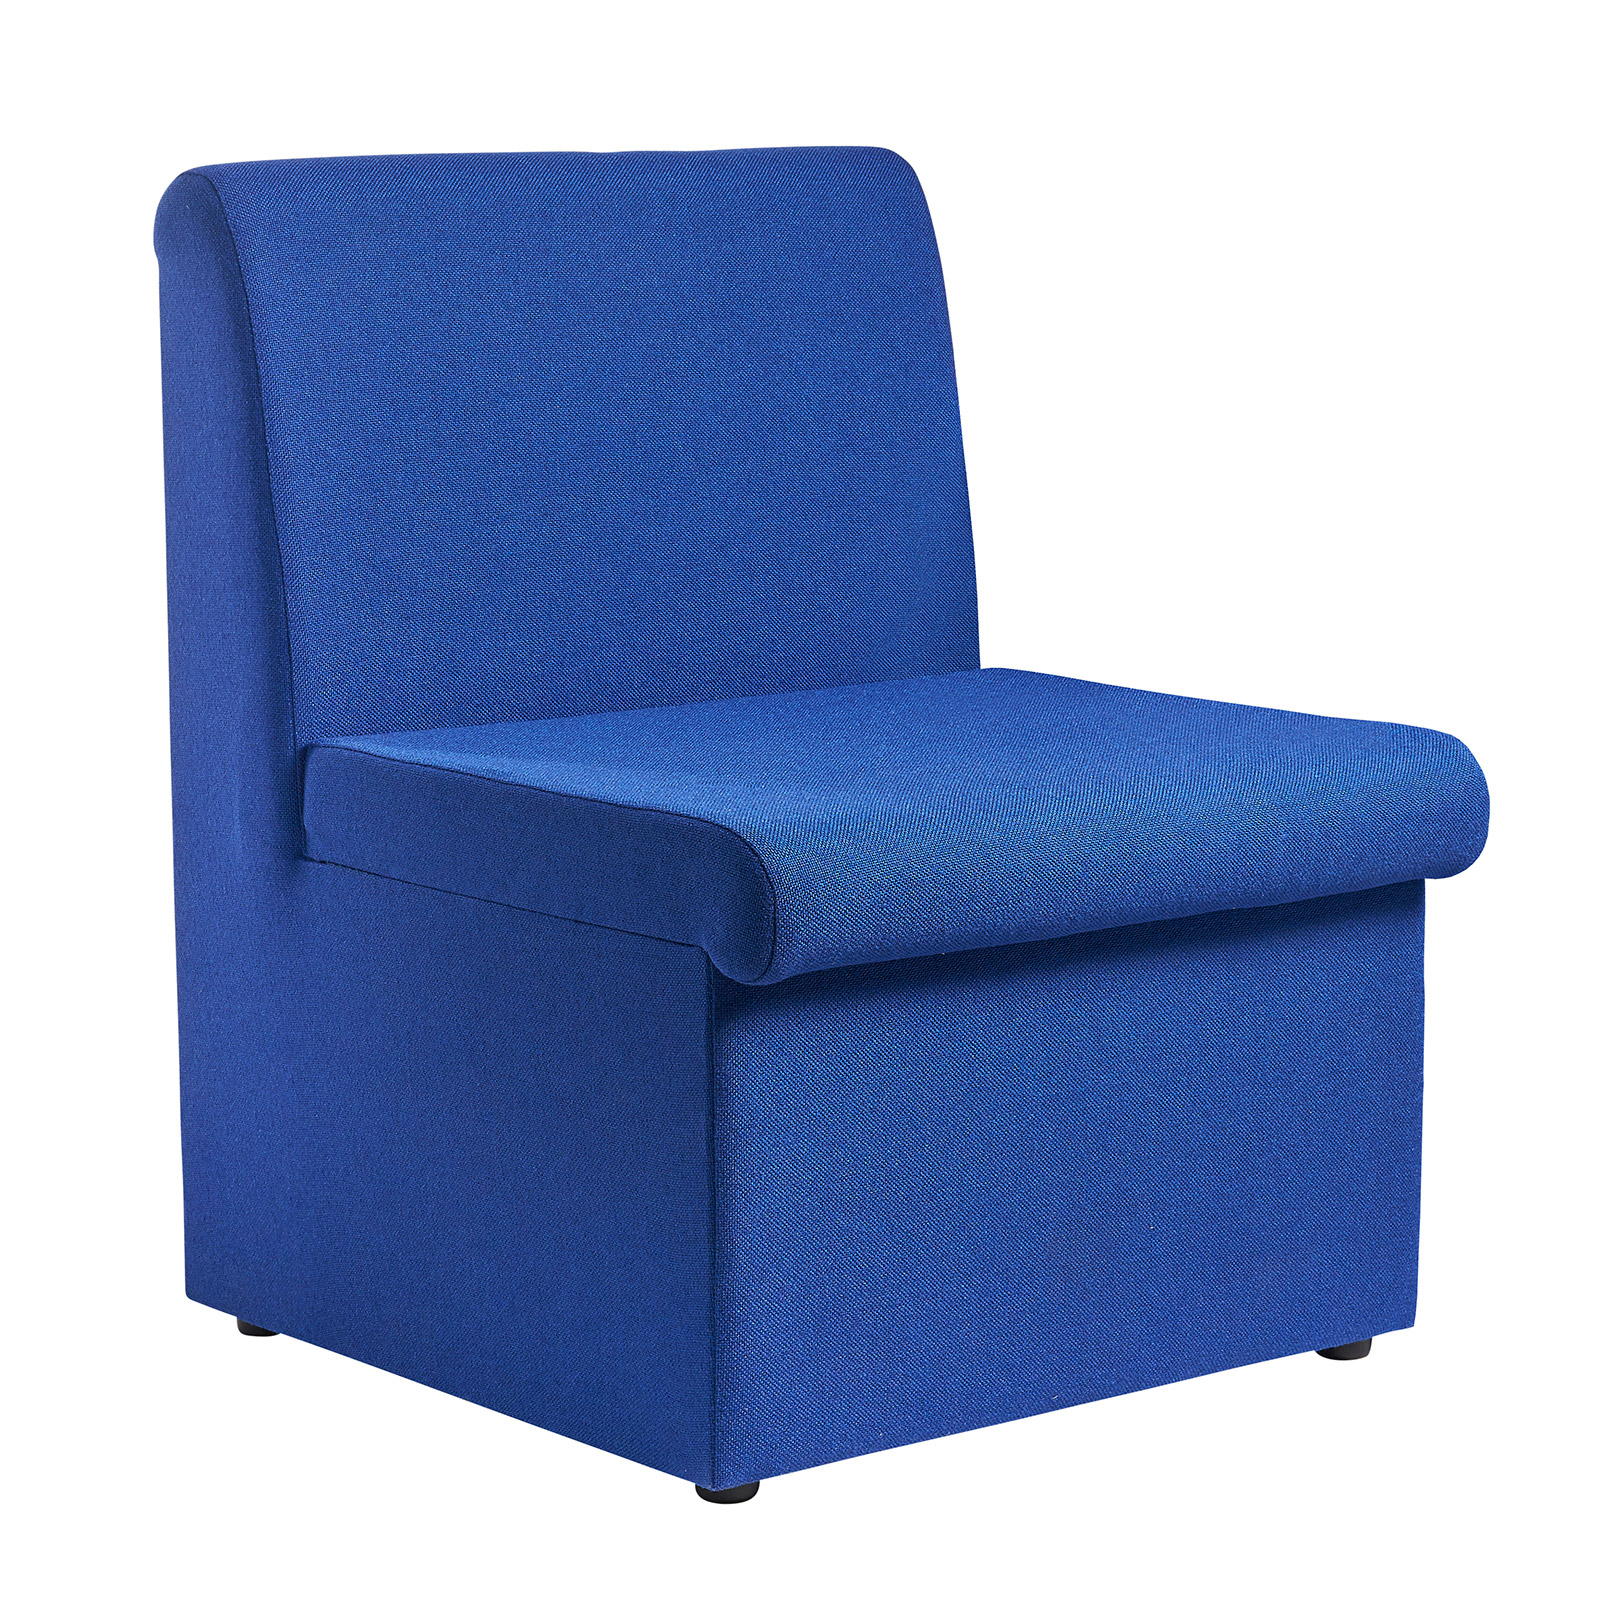 Image for Alto modular reception seating with no arms - blue